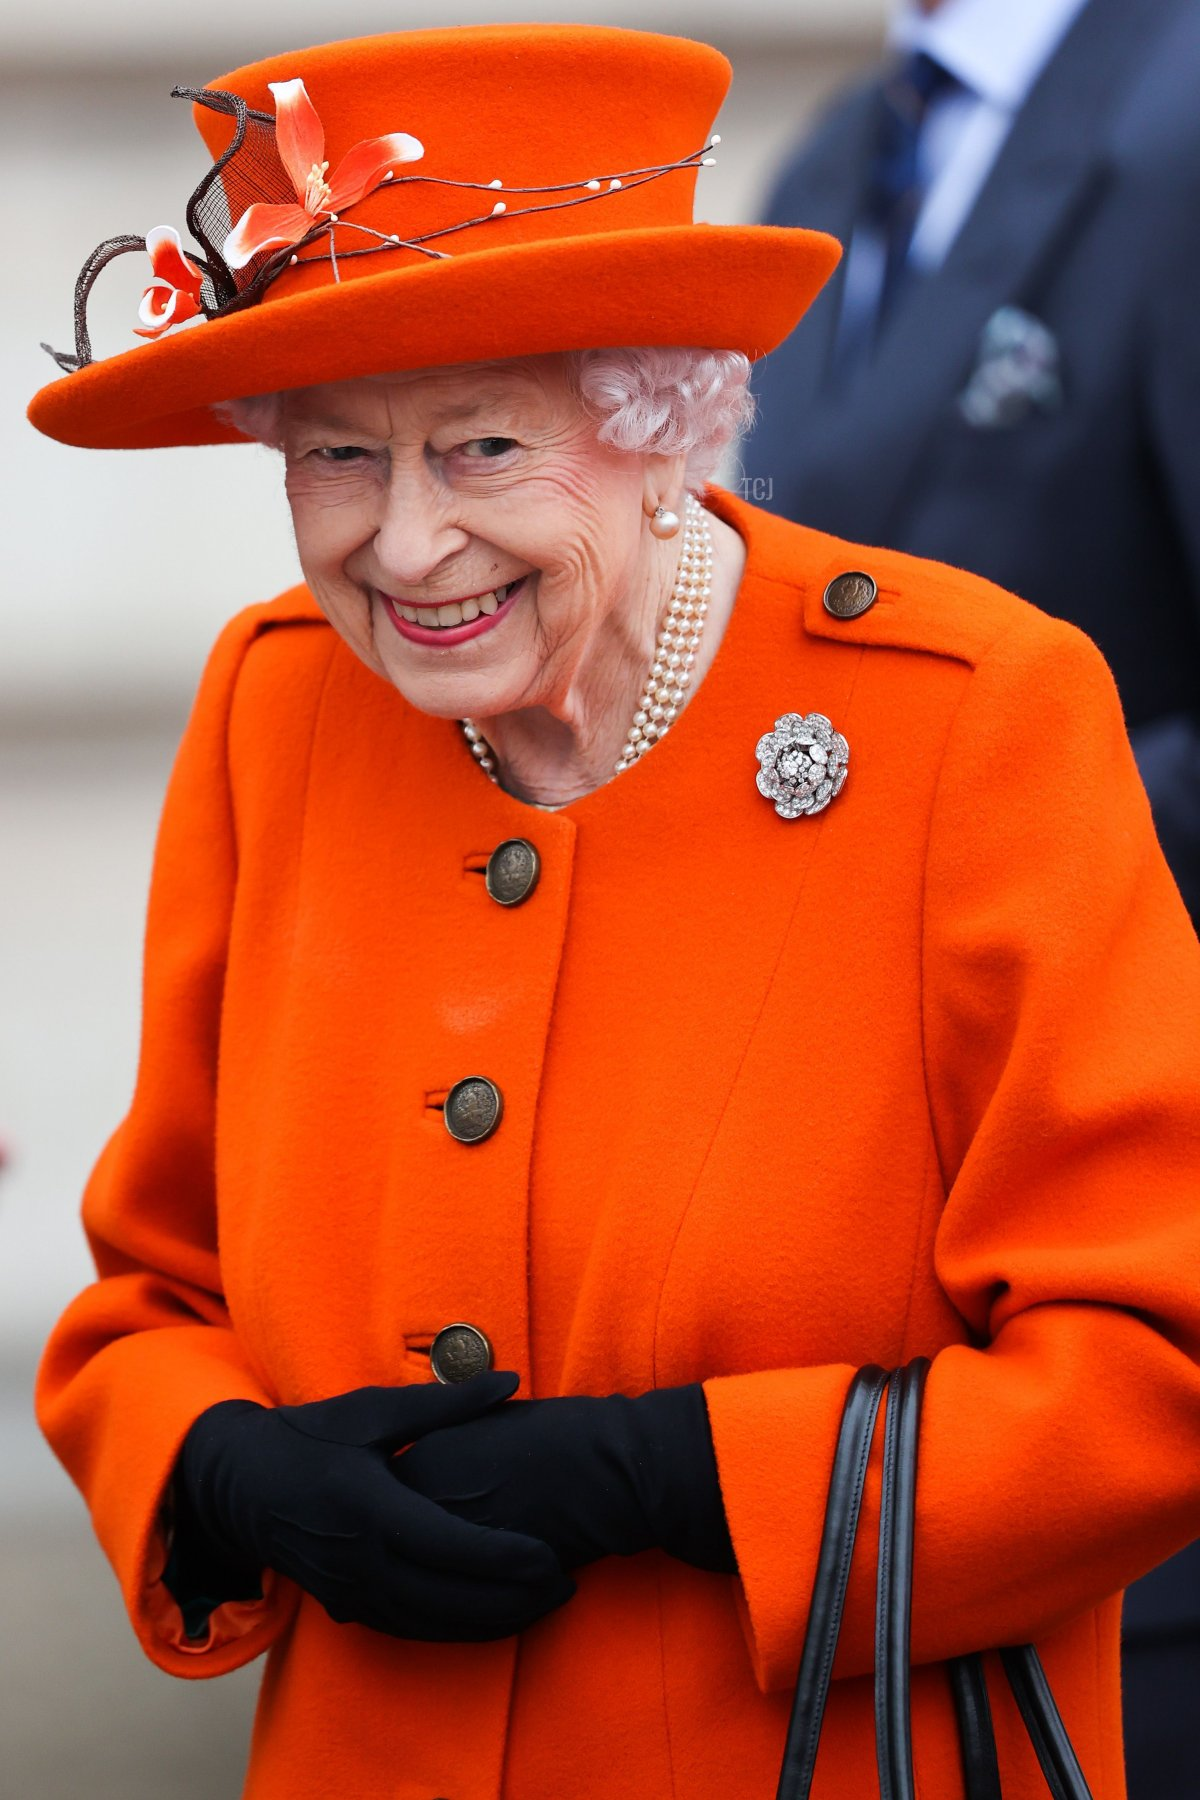 Queen Elizabeth II attends the launch of The Queen's Baton Relay for Birmingham 2022, the XXII Commonwealth Games at Buckingham Palace on October 07, 2021 in London, England